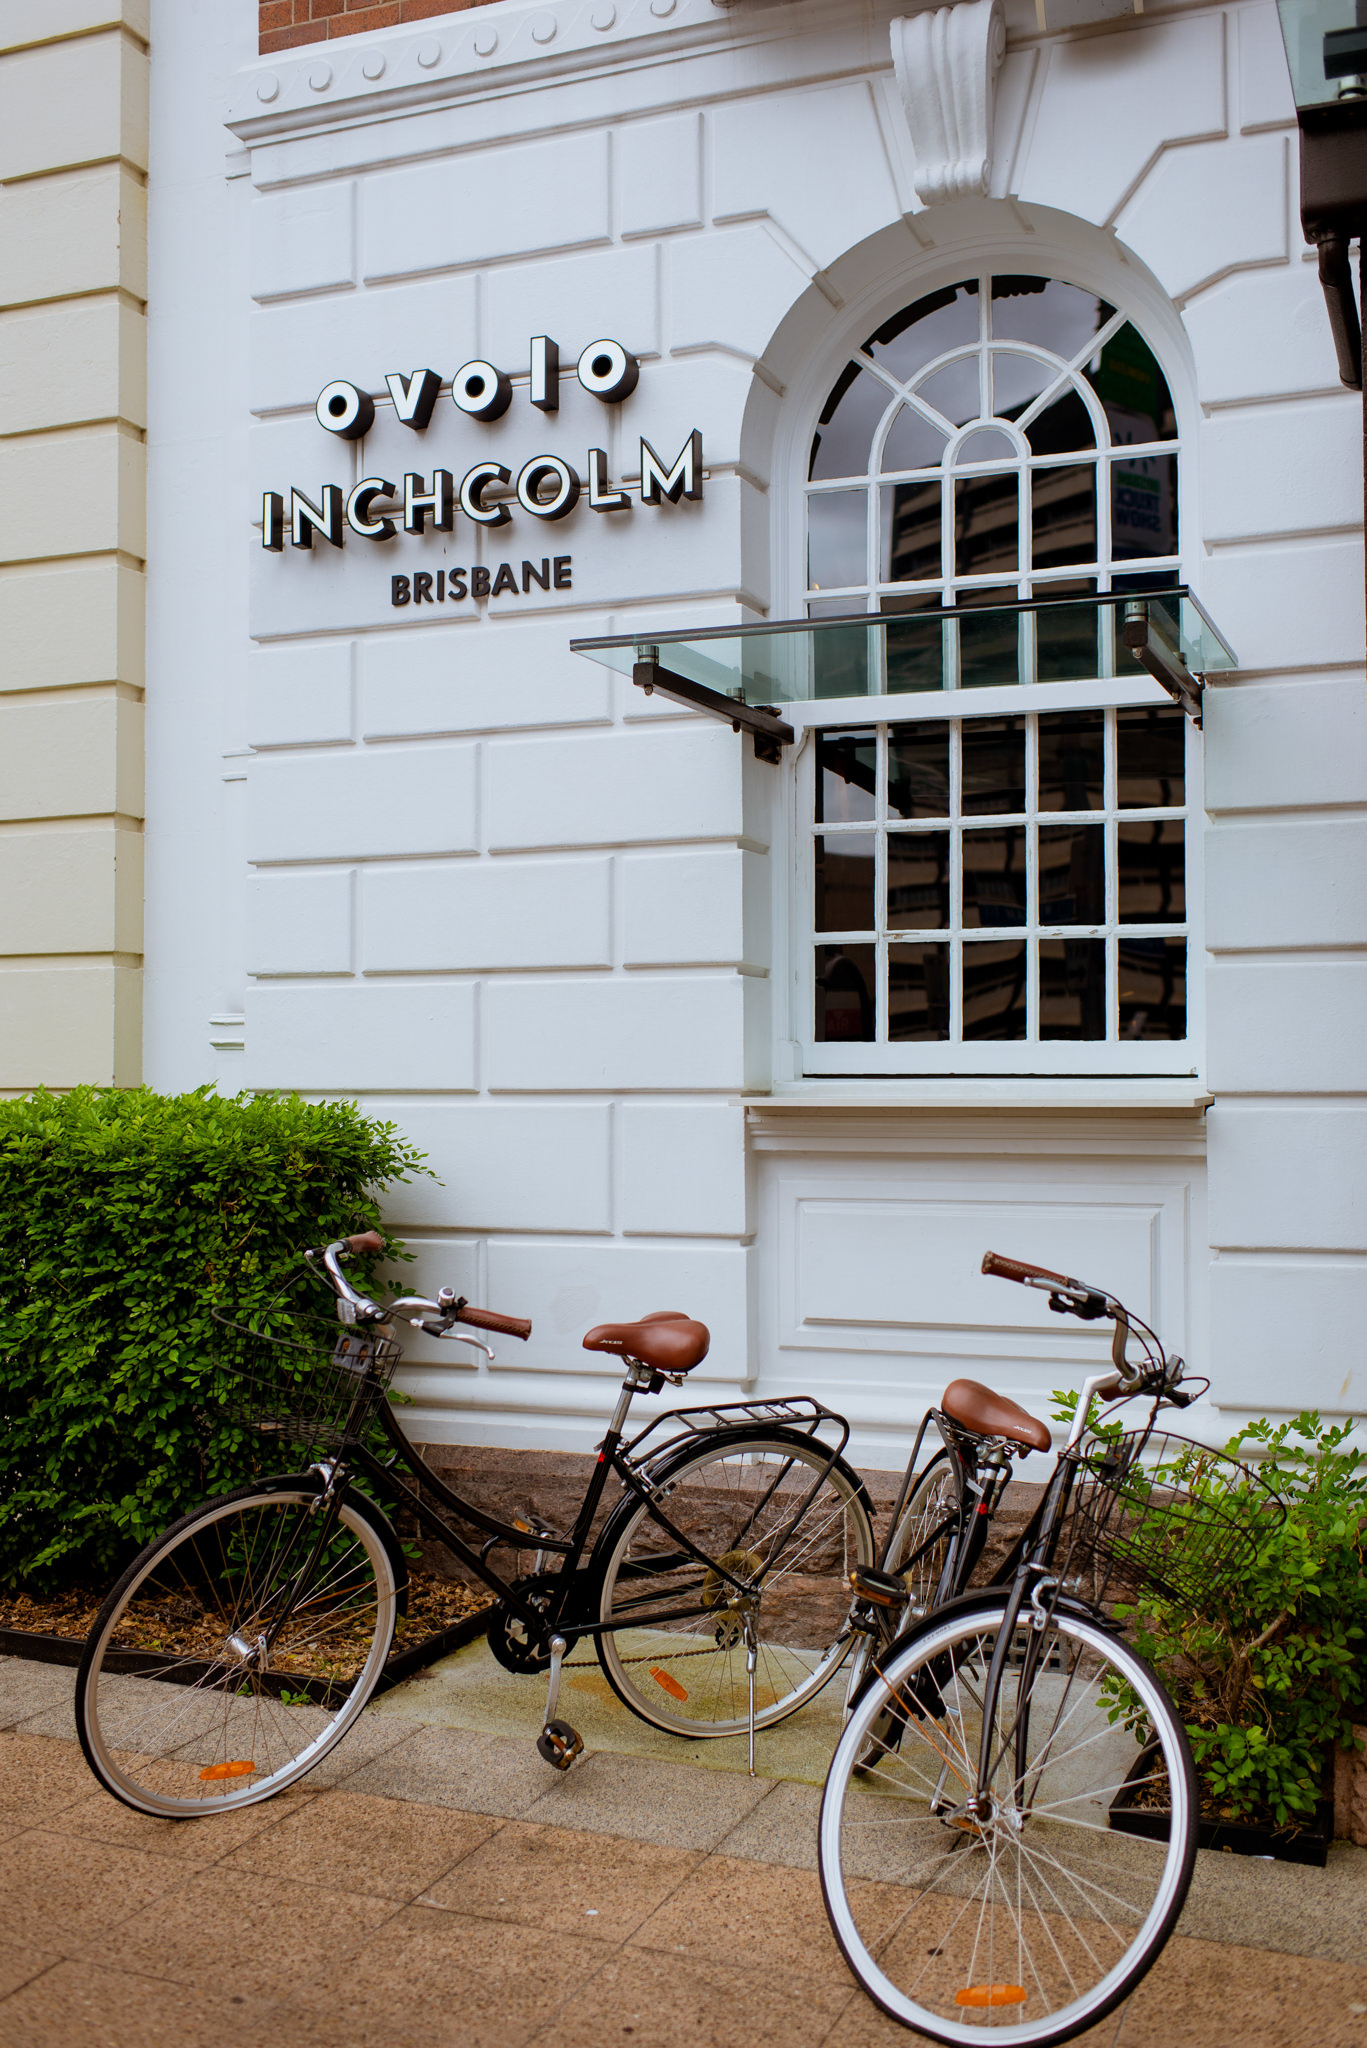 Two bicycles parked outside Ovolo Incholm Hotel, Brisbane